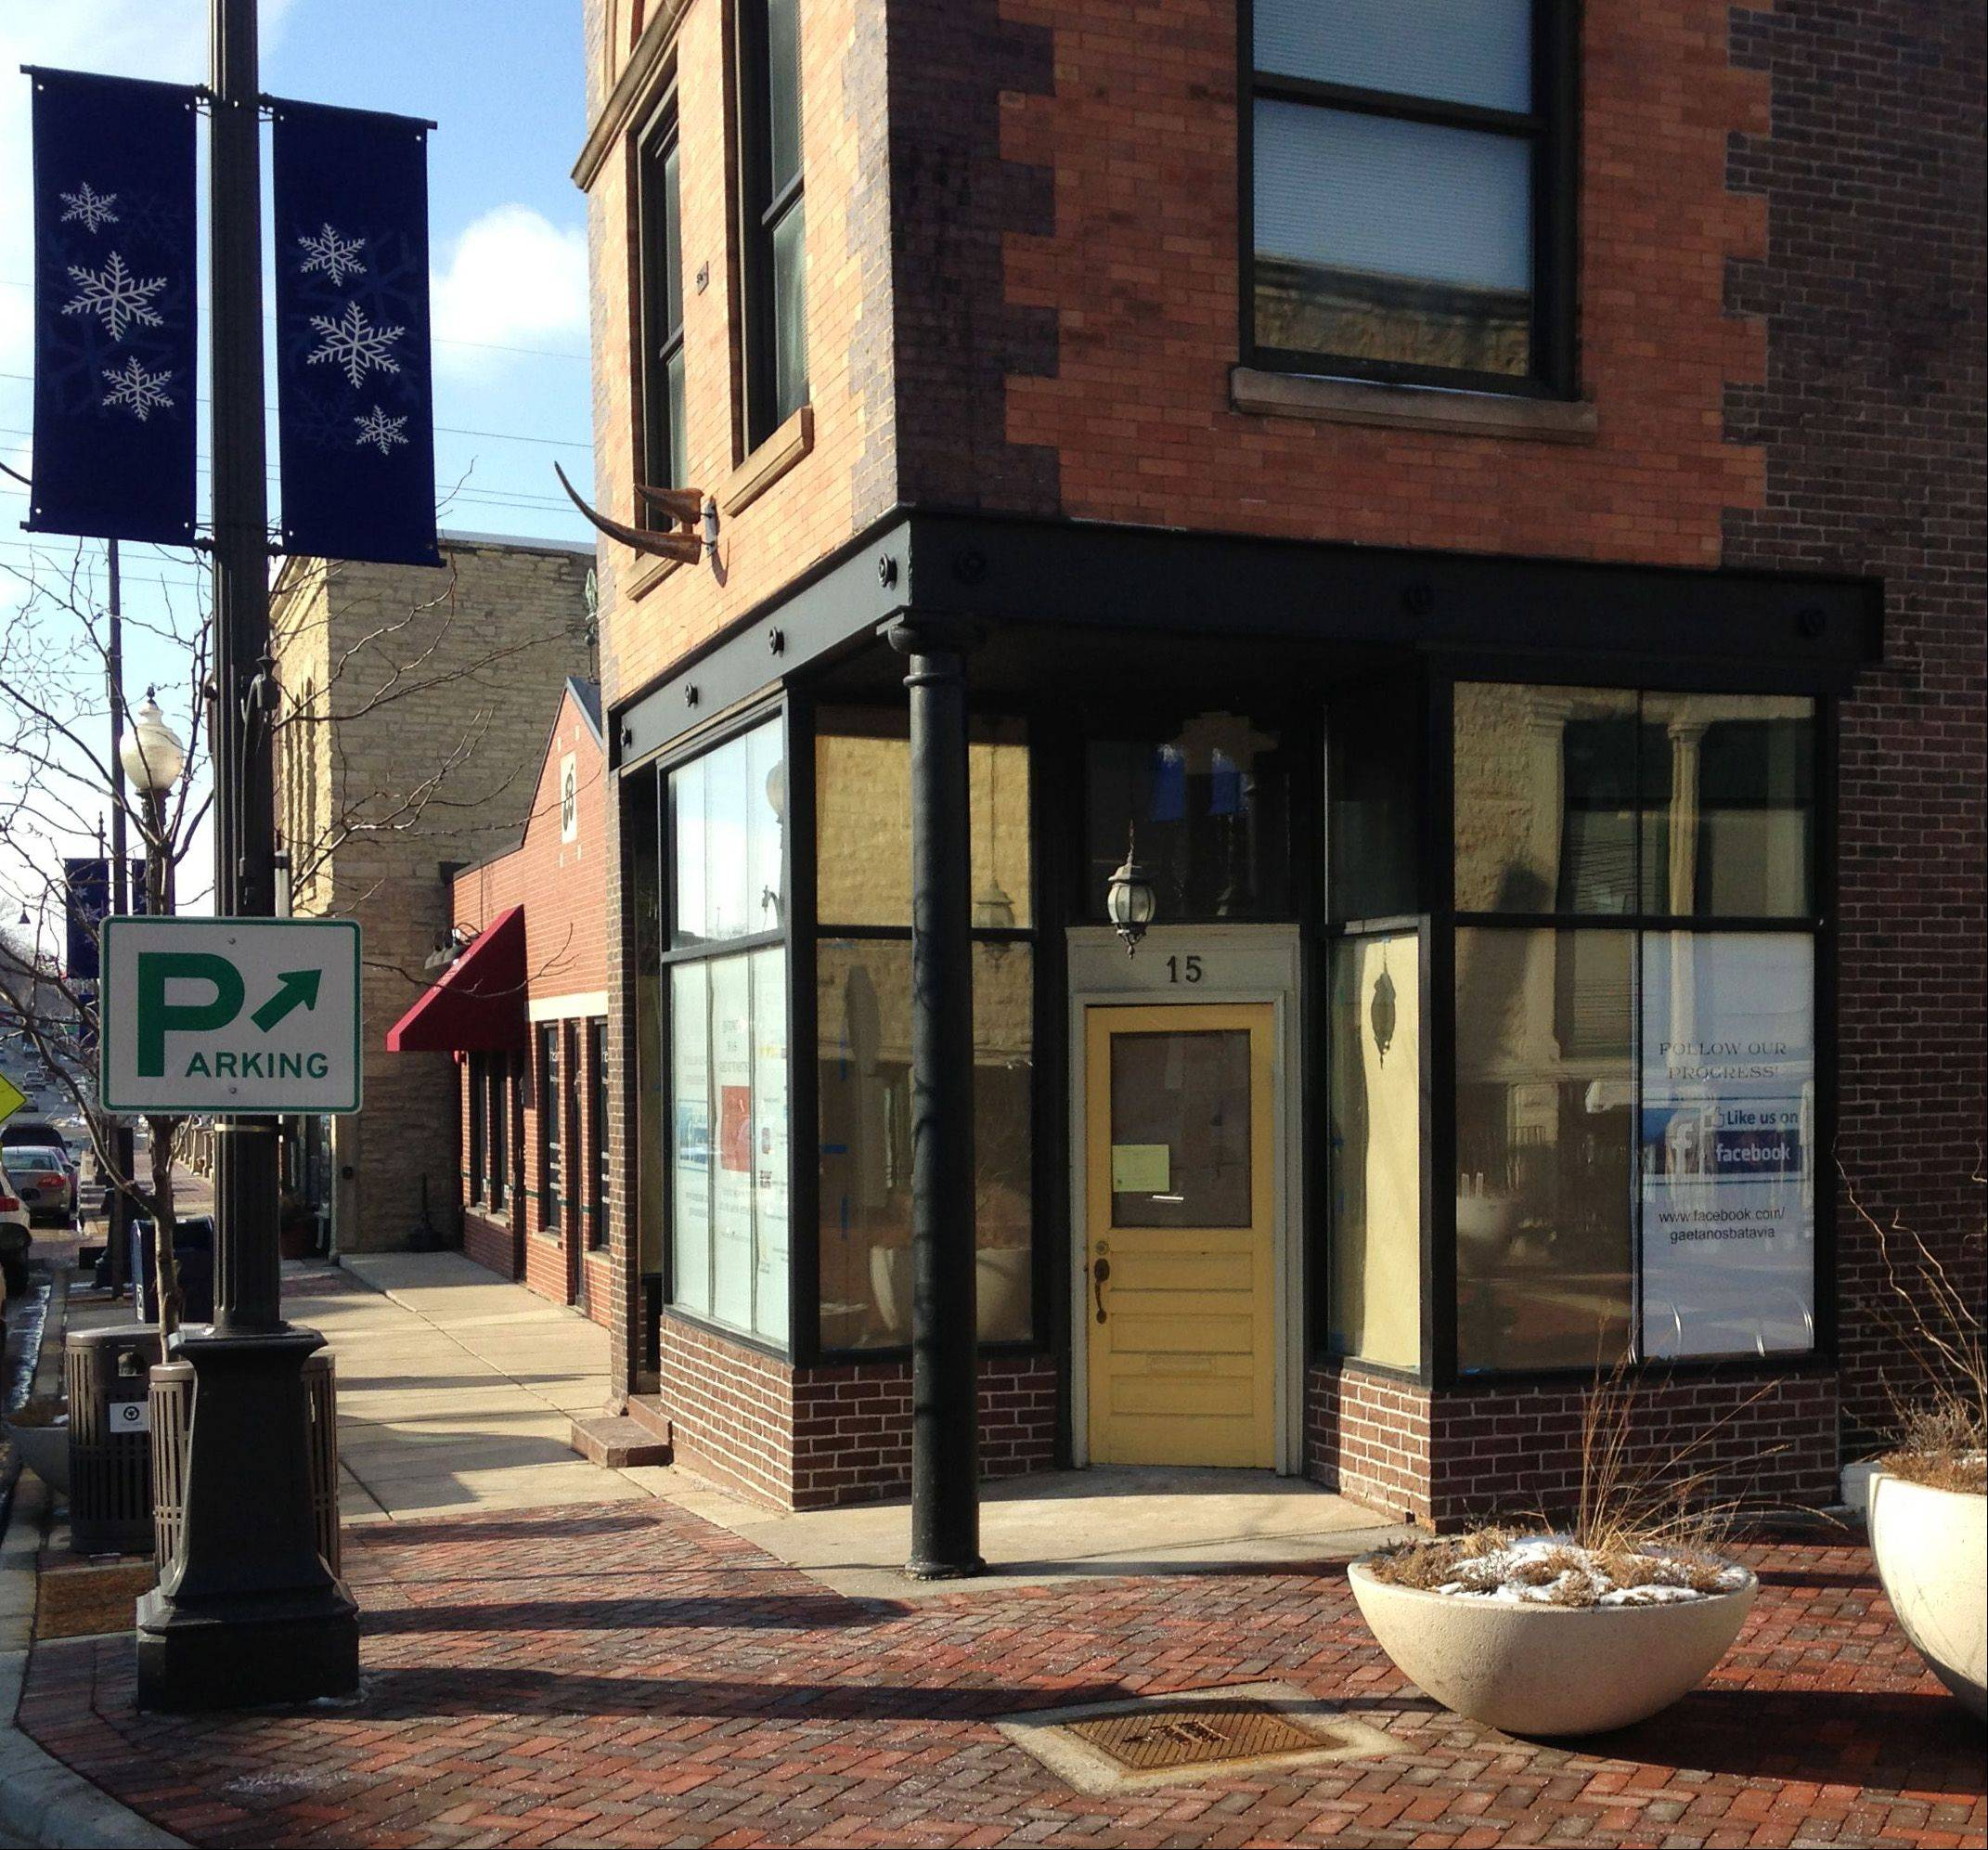 Batavia considers incentives to get new downtown restaurant